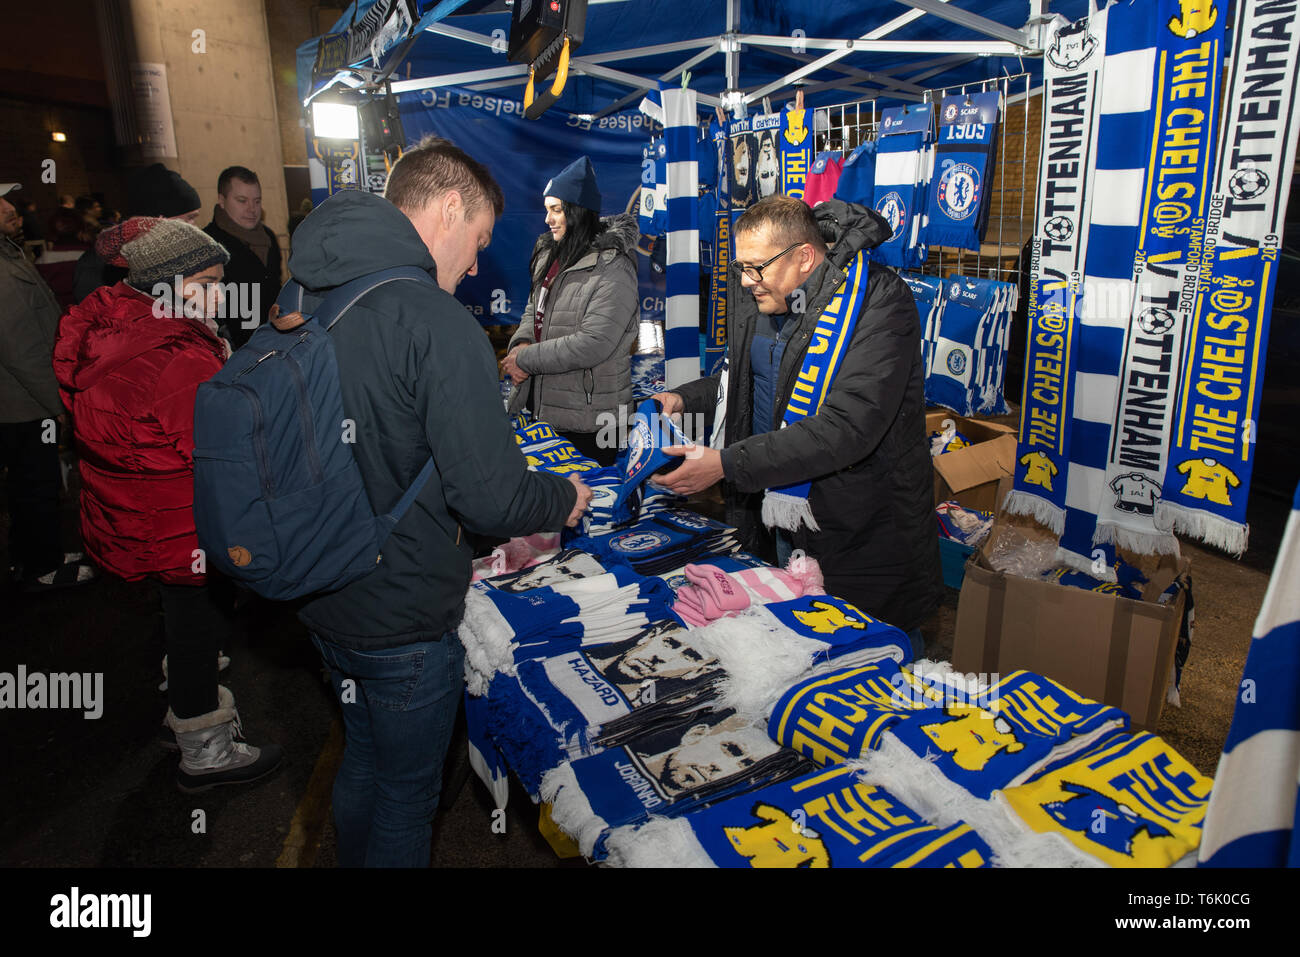 Supporter buying a Chelsea scarf near Stamford Bridge stadium, Chelsea F.C's home. - Stock Image